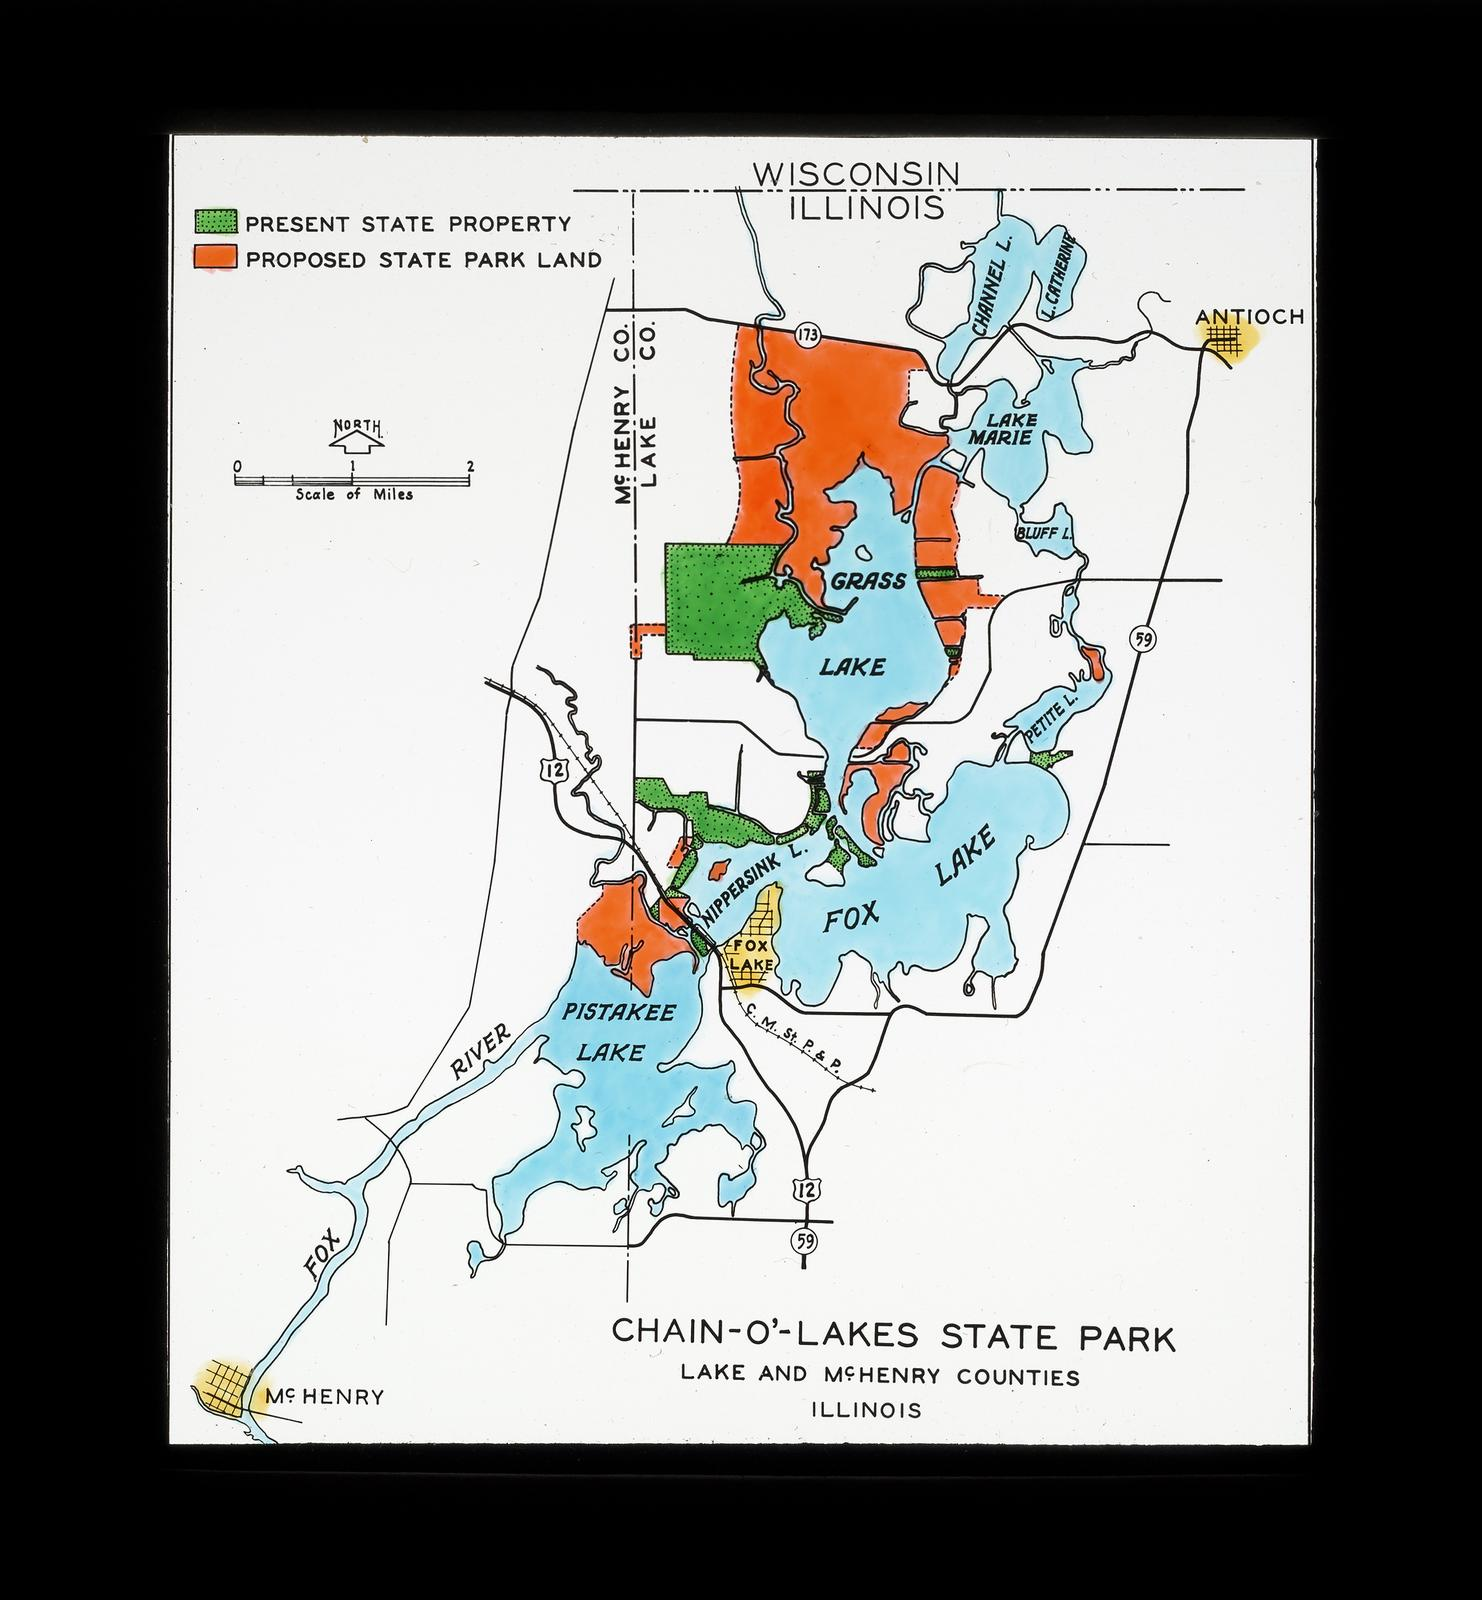 State Parks Illinois Map.Ecc Forest Preserve Maps And Foreign Parks Chain O Lakes State